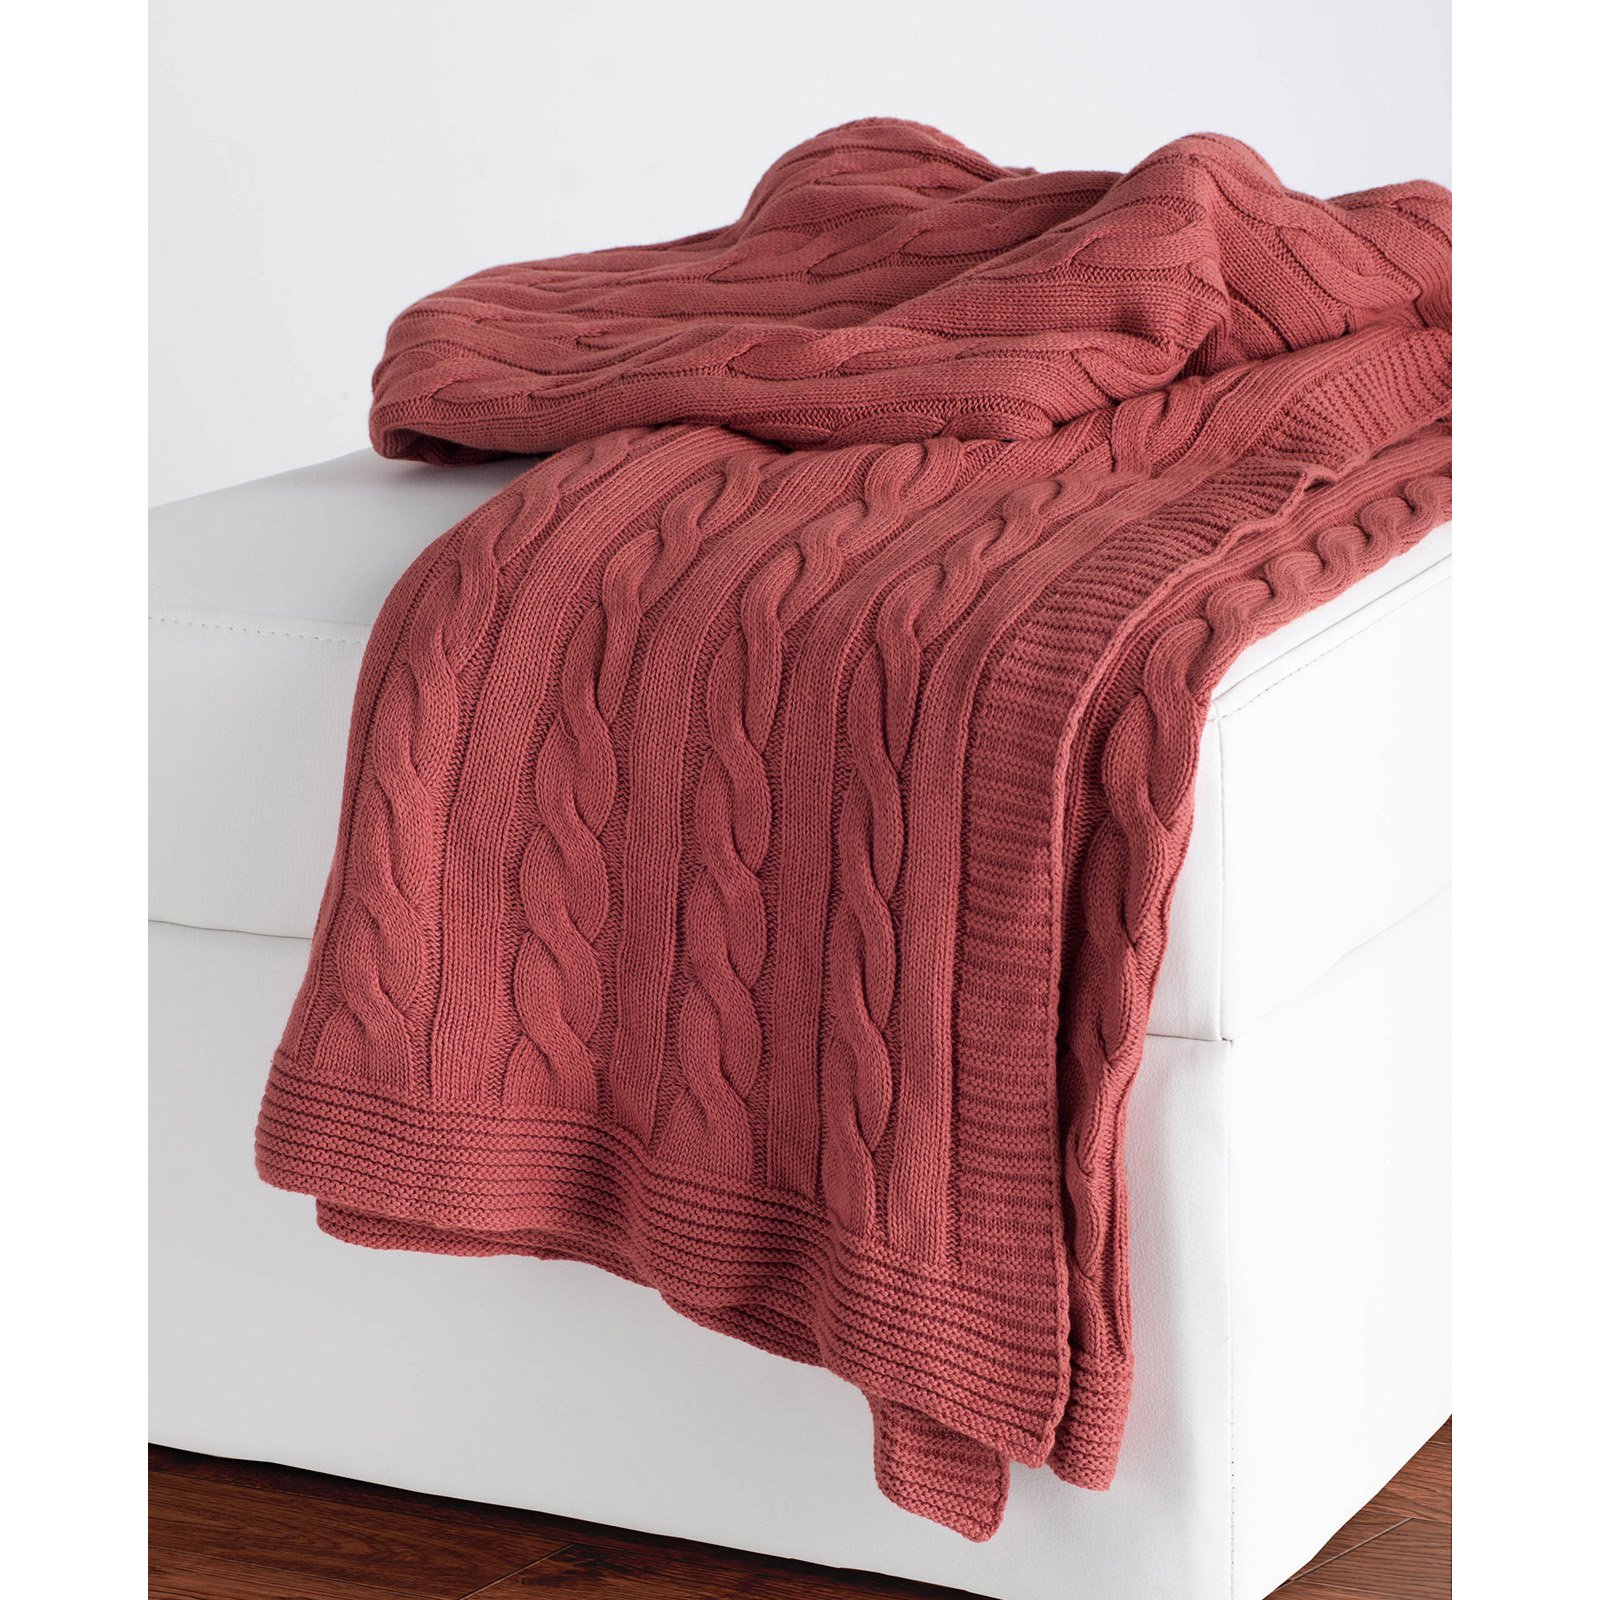 Rizzy Home Cable Knit Cotton Luxury Sweater Throw Blanket - Walmart.com